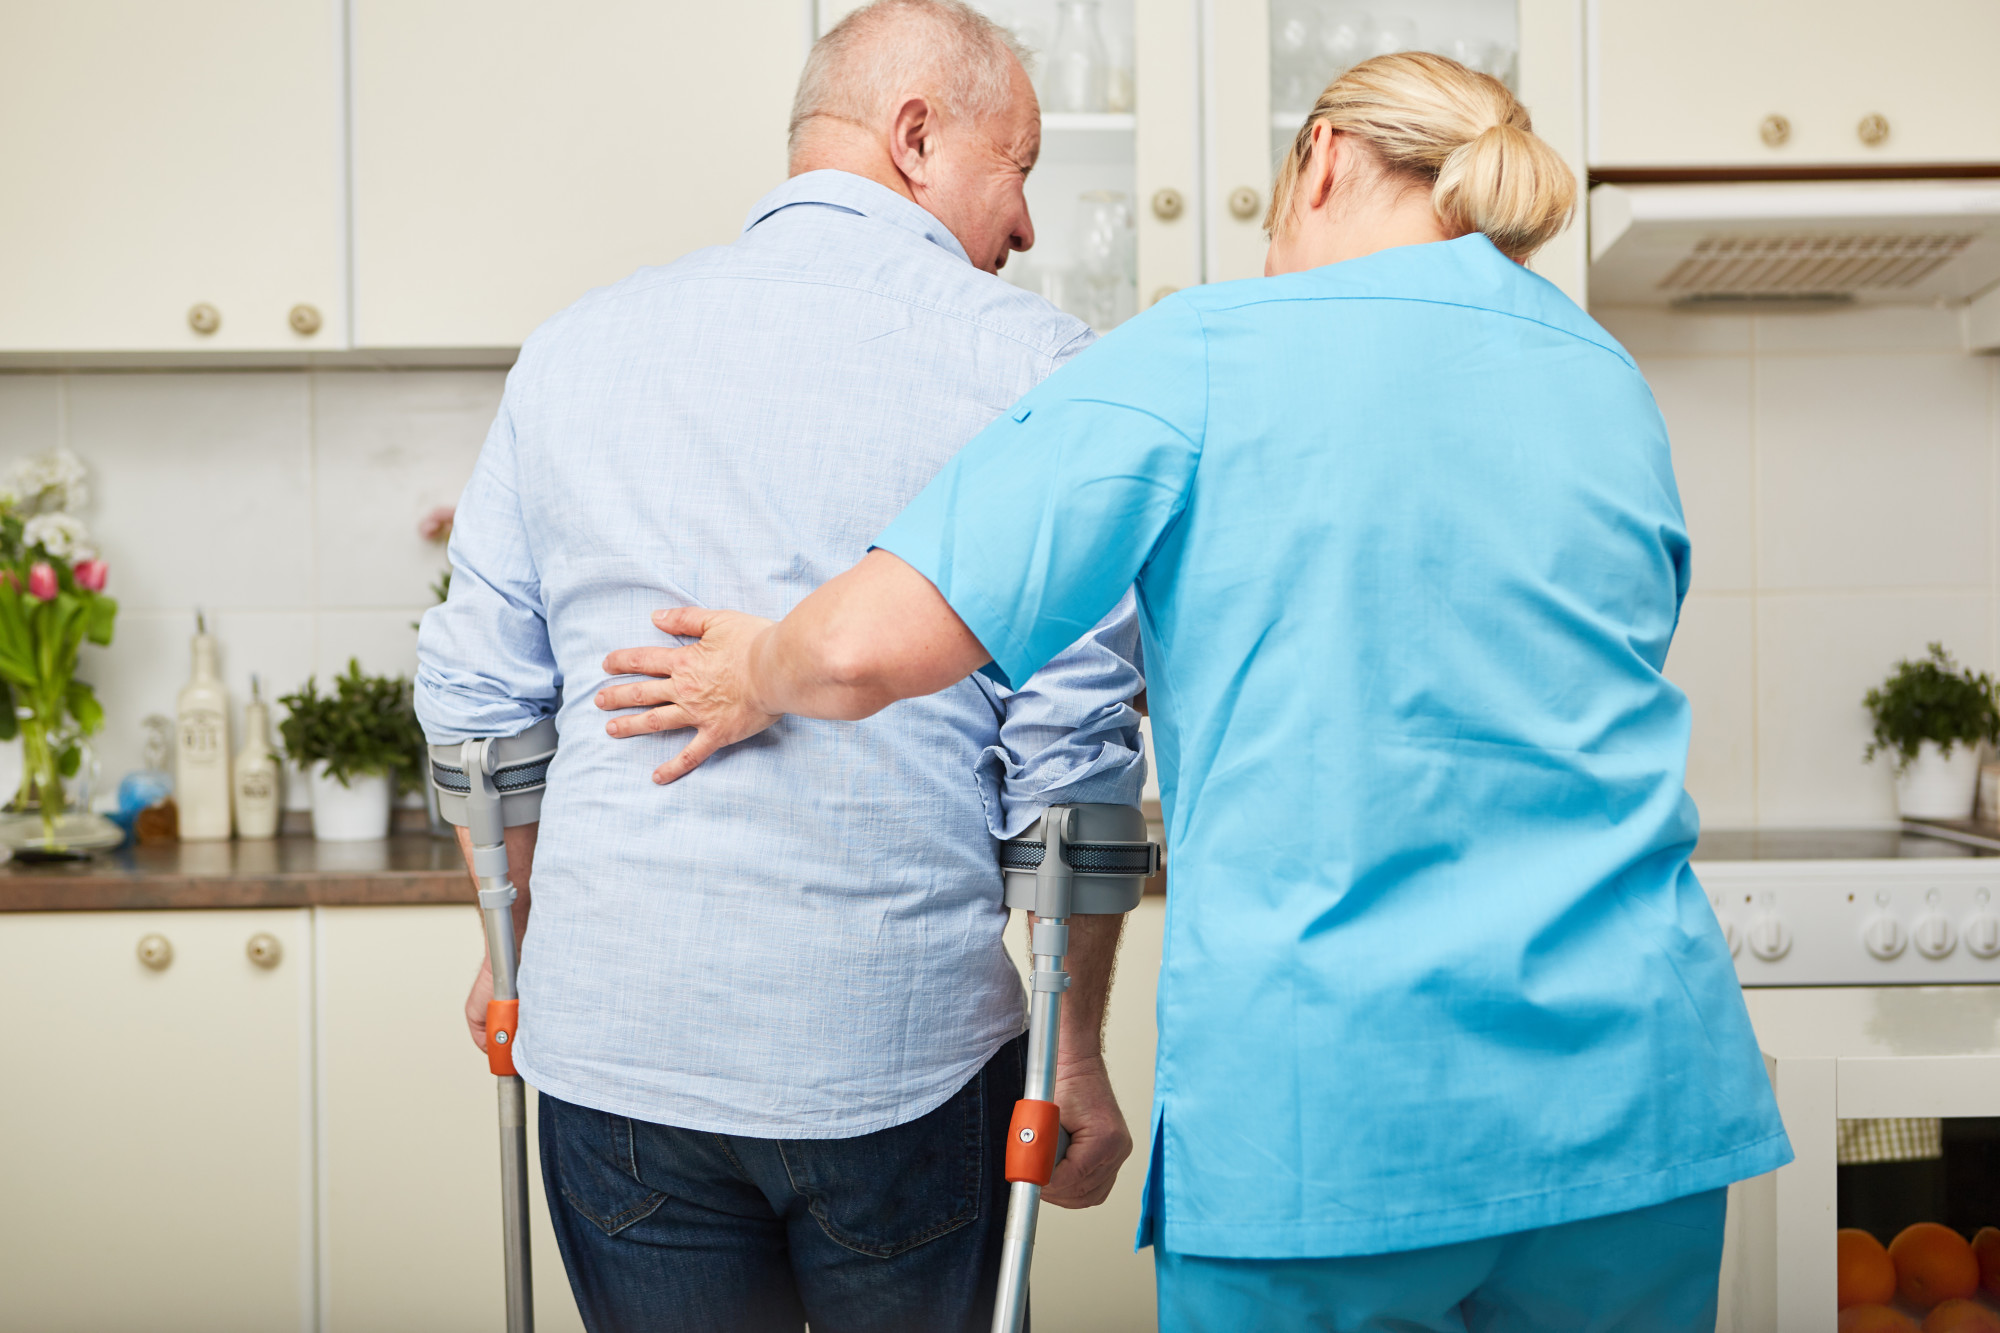 What You Can Expect From At-Home Healthcare Services